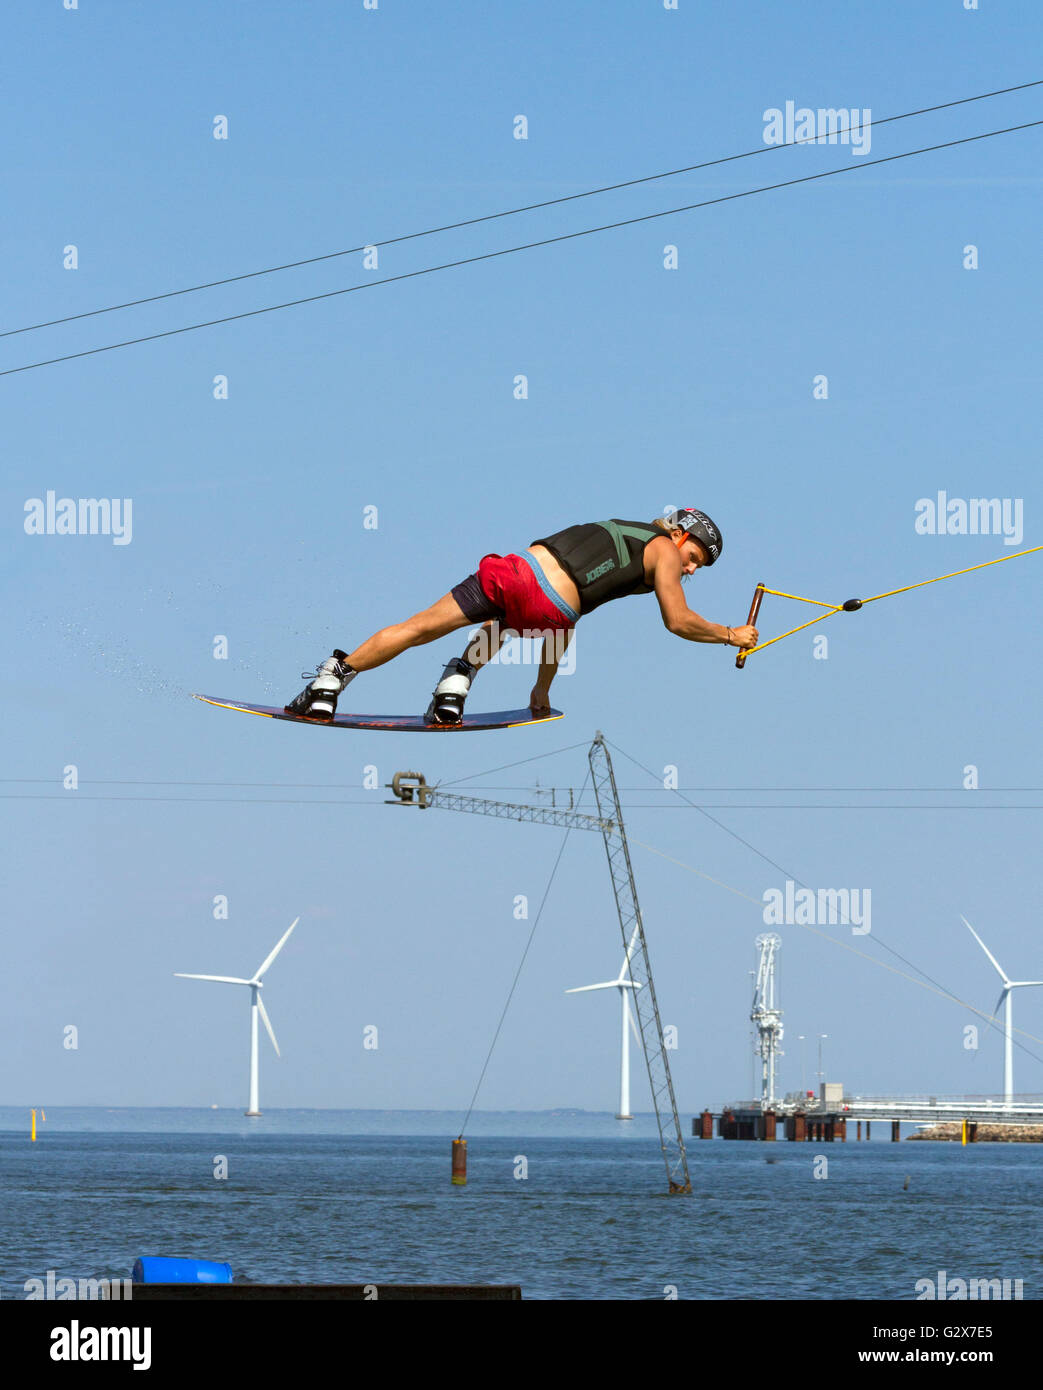 wakeboarder-at-copenhagen-cable-park-mid